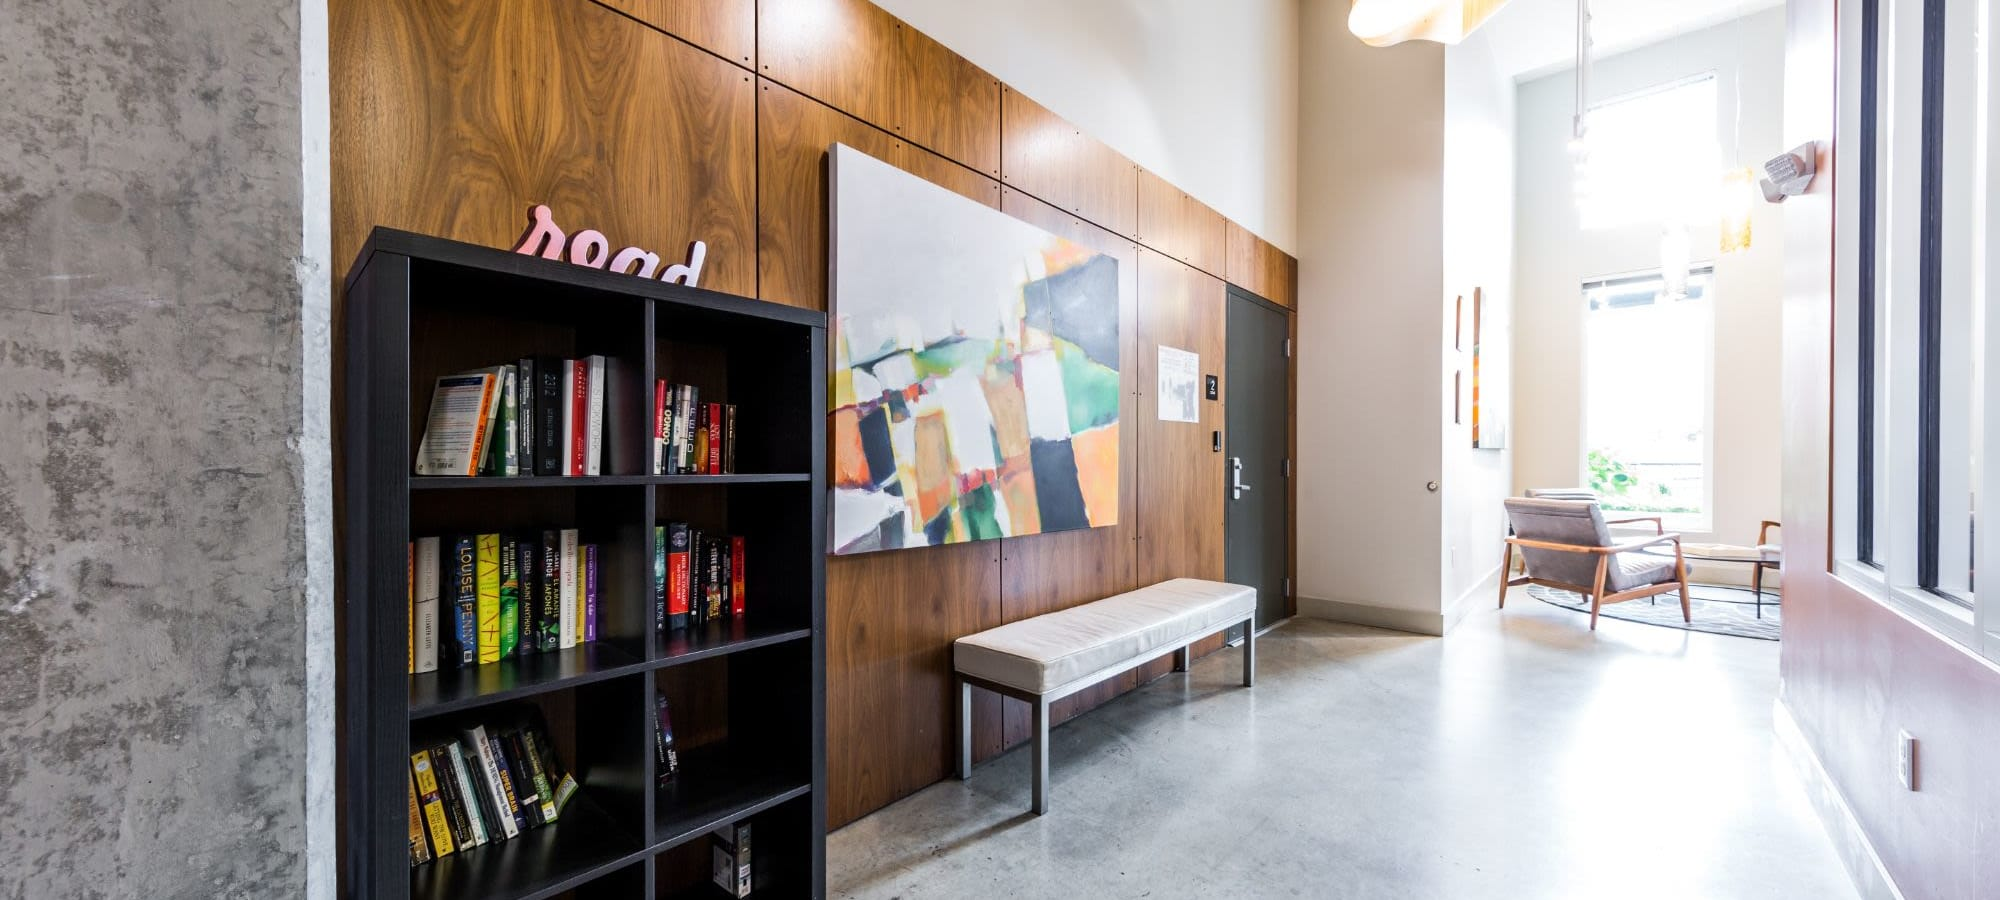 Apply to live at Marq West Seattle in Seattle, Washington